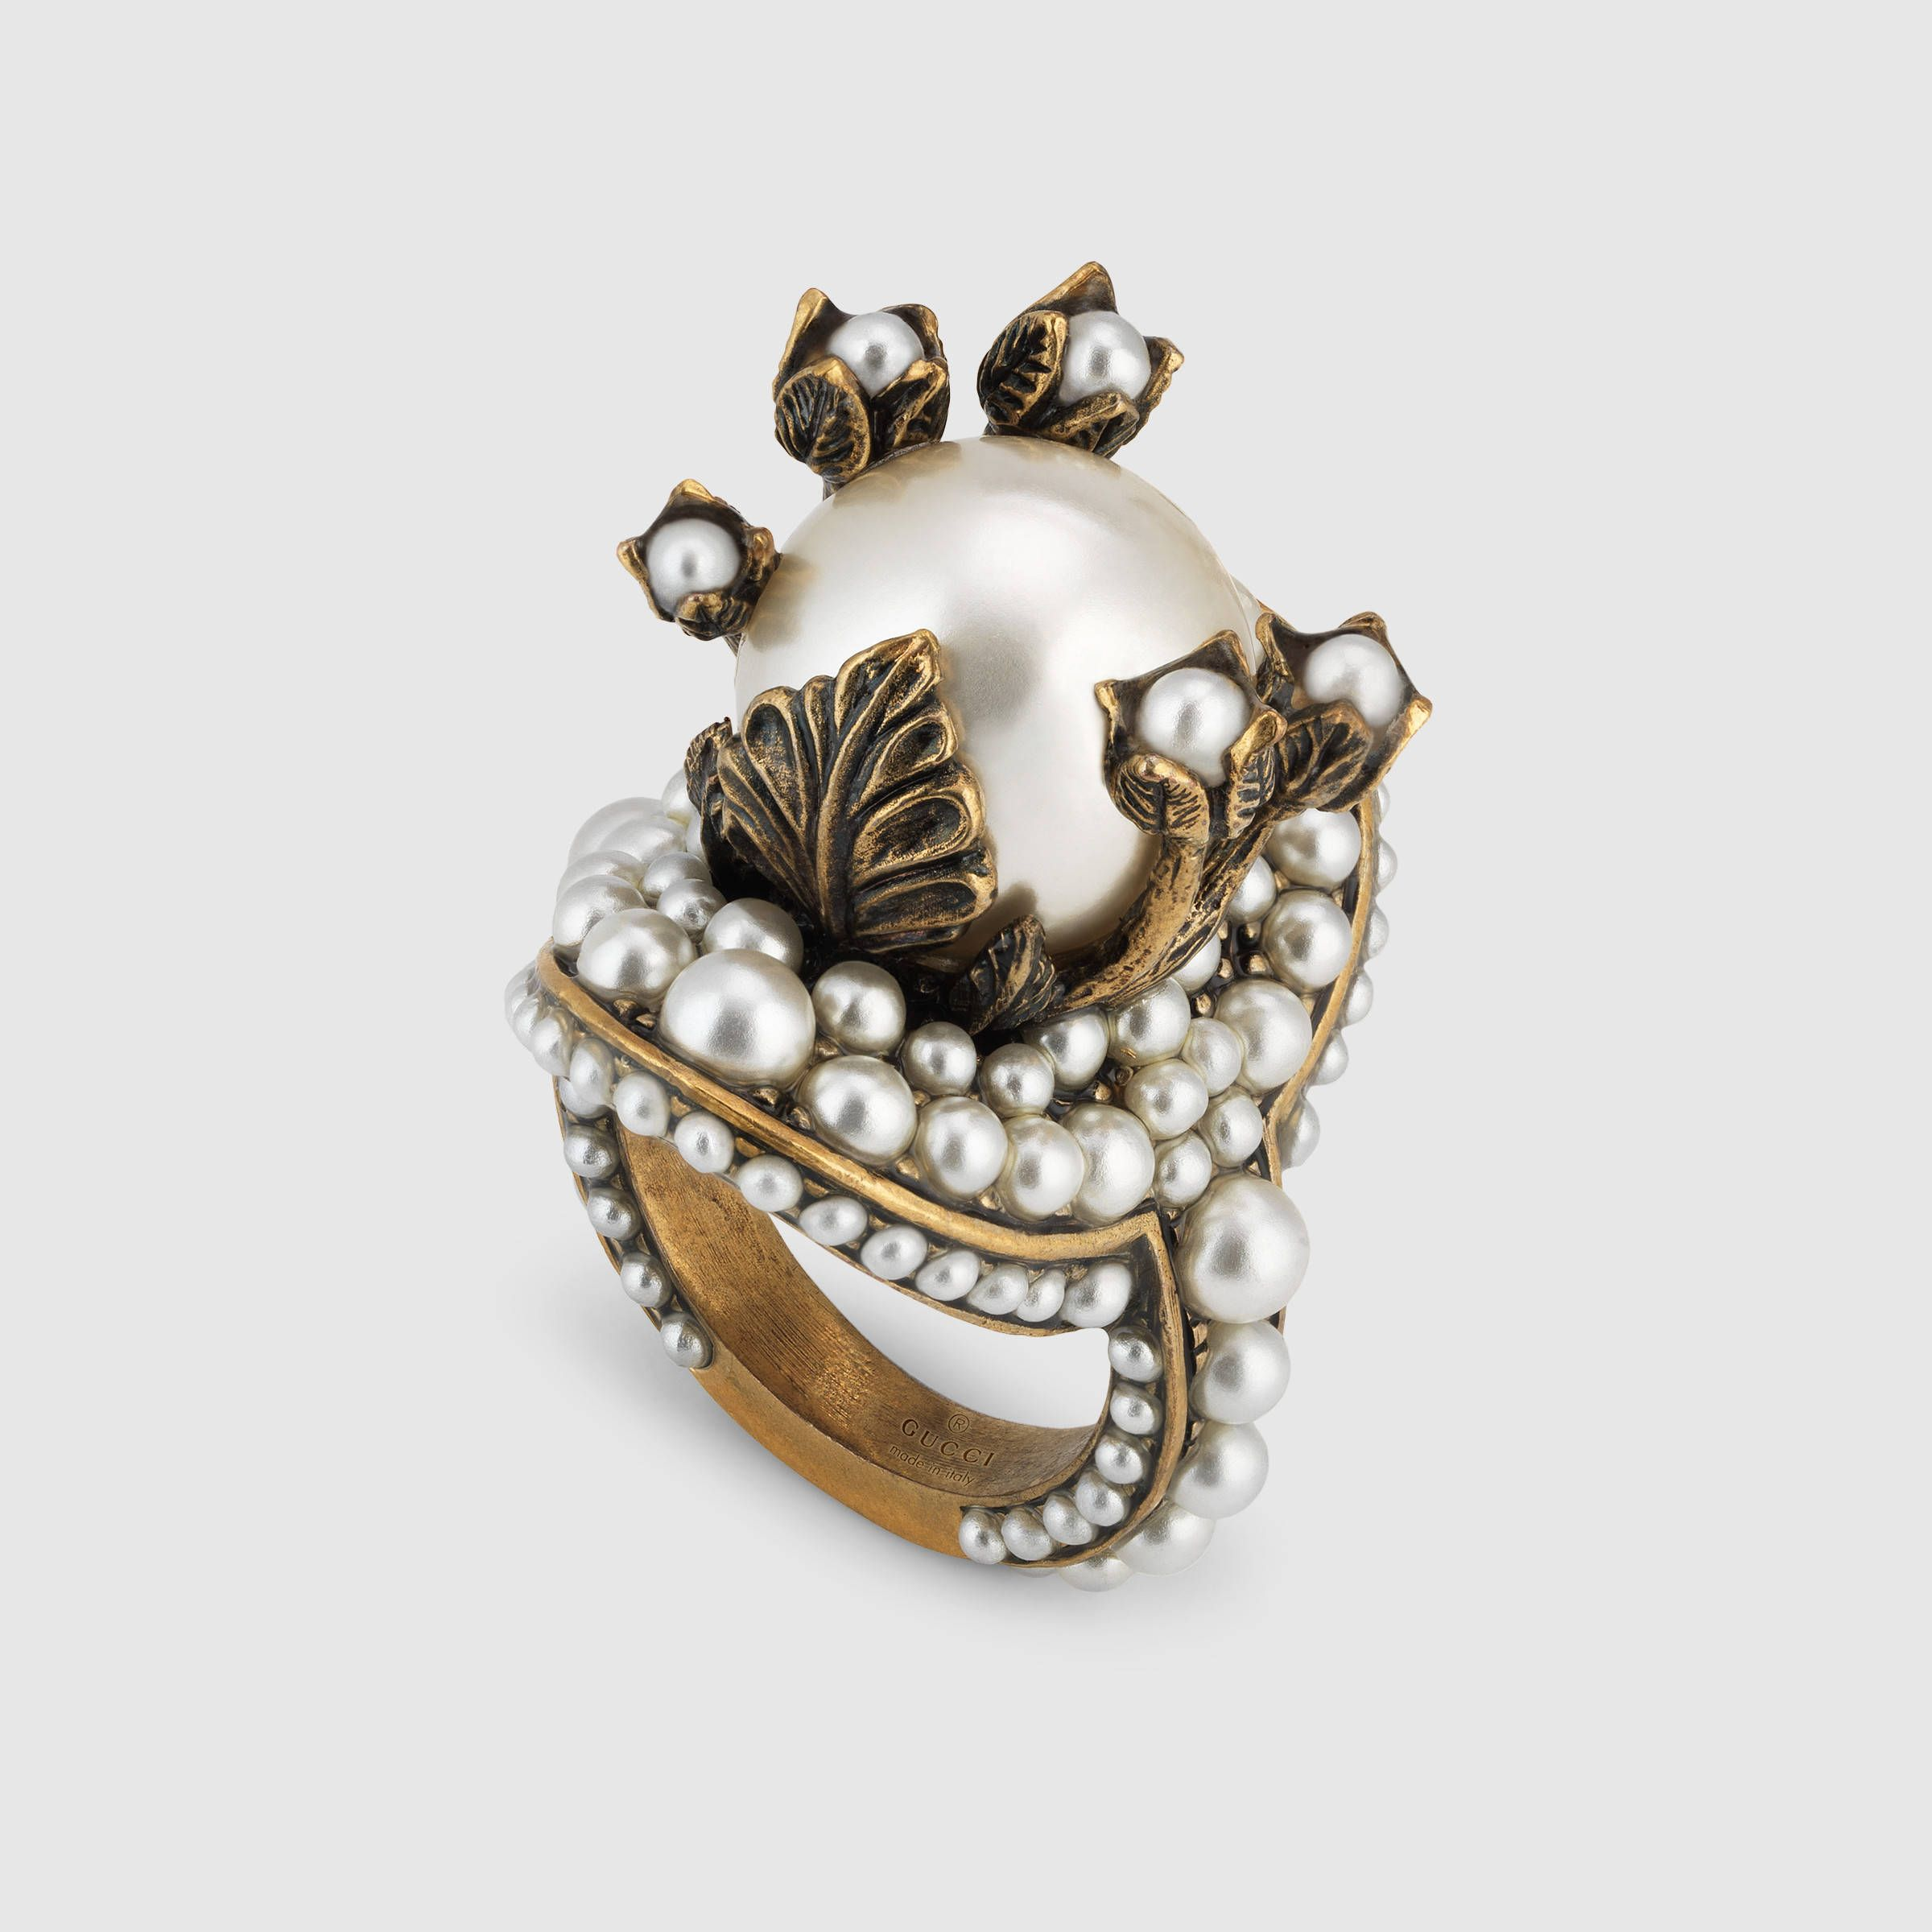 Flower ring with glass pearls | Gucci, Pearls and Ring